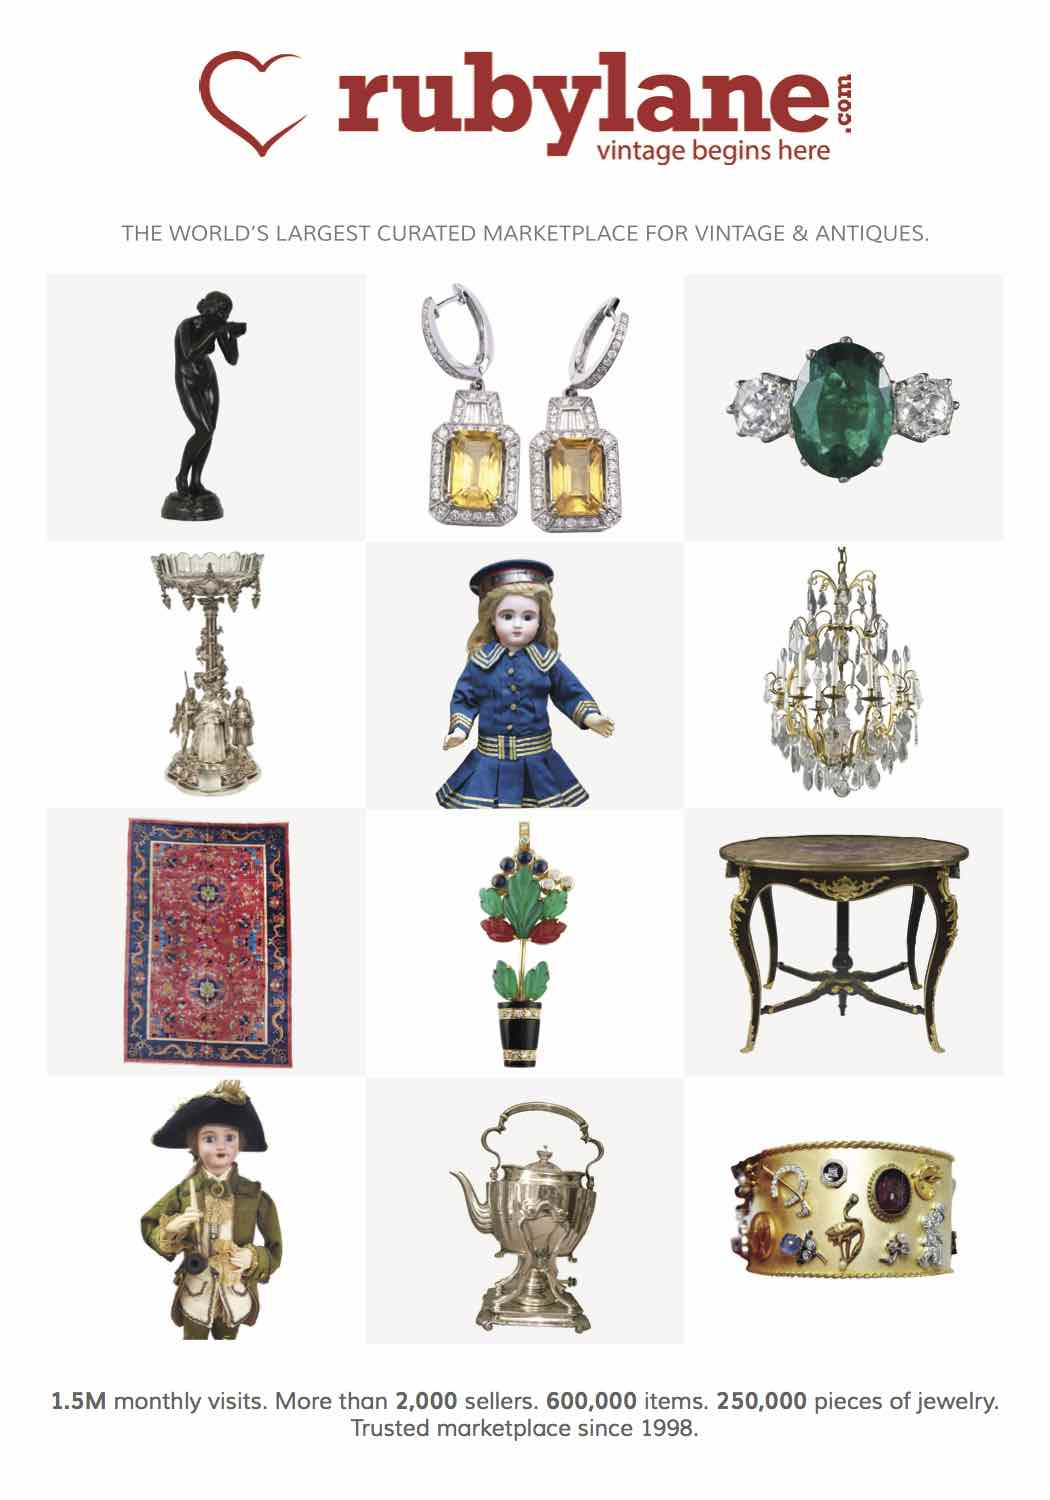 January 4, 2020, Ruby Lane Sponsors The 56th Annual Original Miami Beach Antique Show image 2